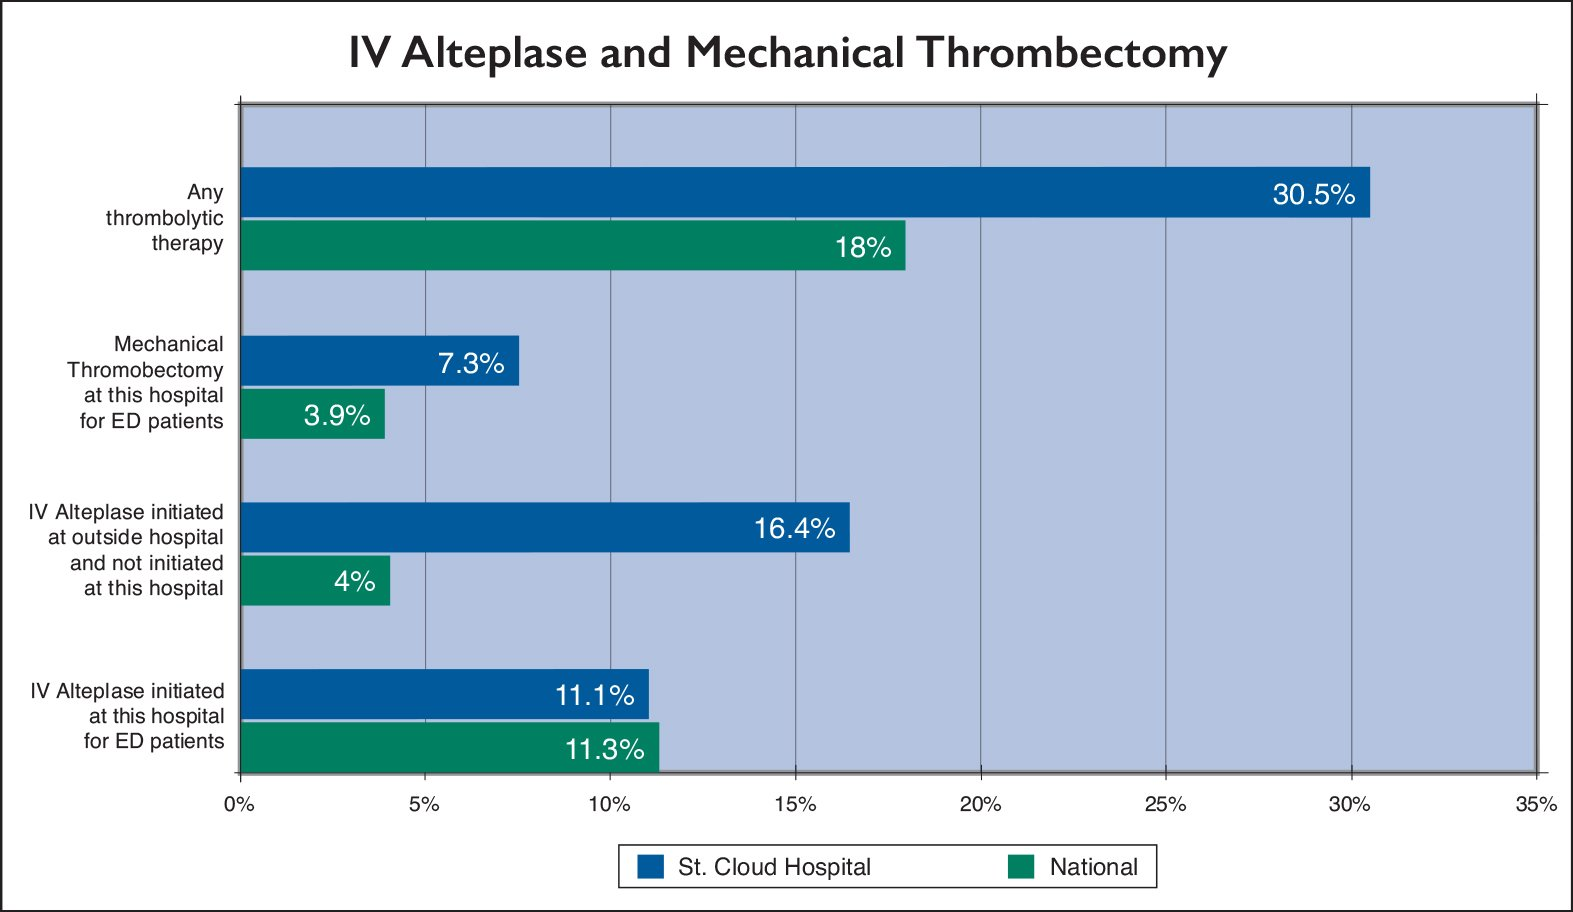 IV Alteplase and Mechanical Thrombectomy